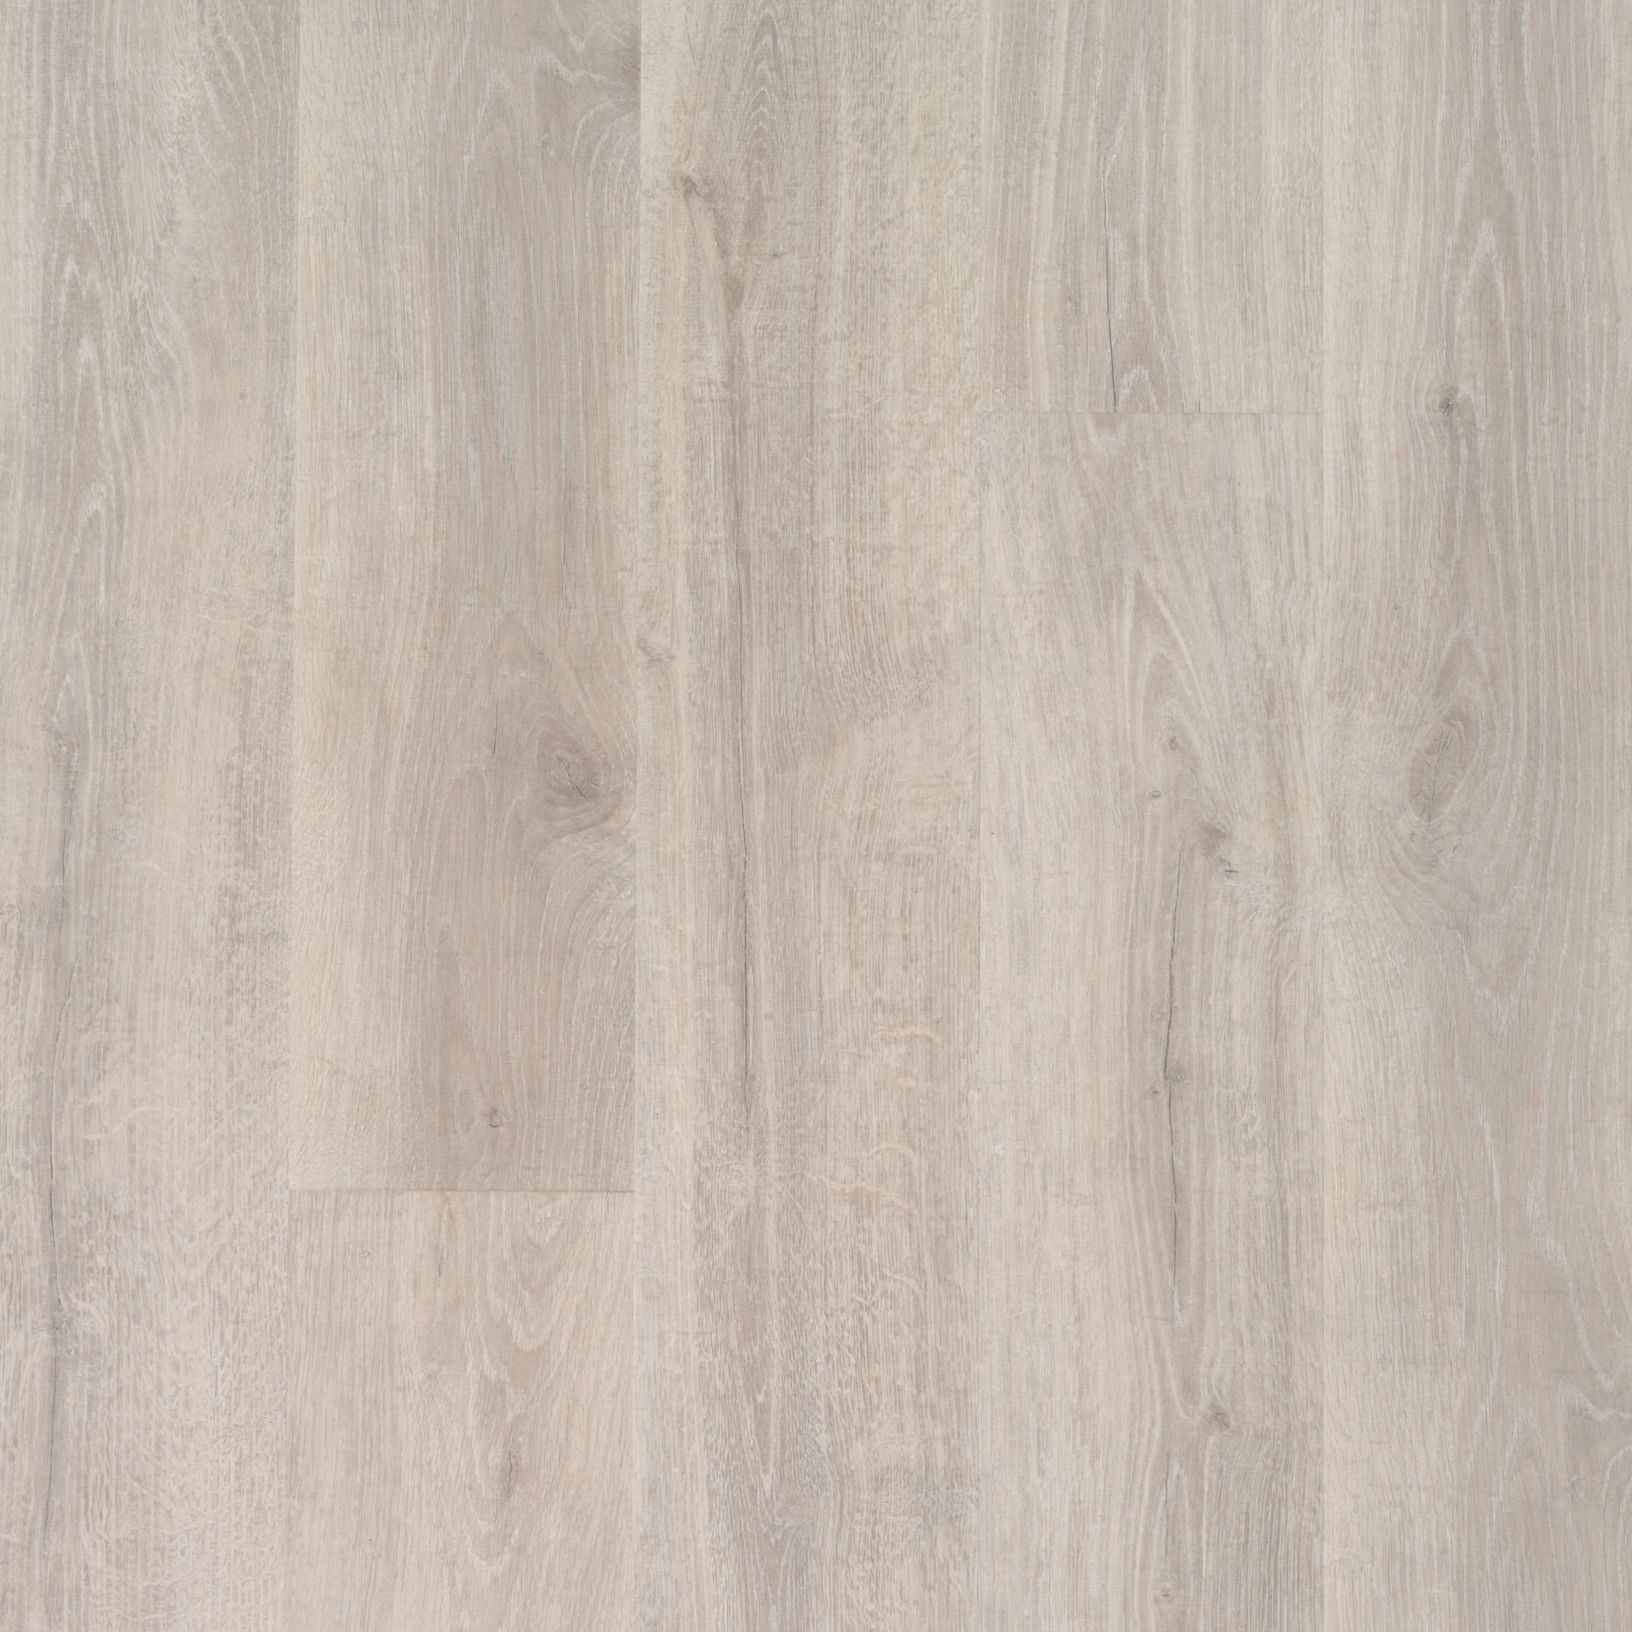 Laminate AntiqueStyle CAD78-4 CottonKnitOak